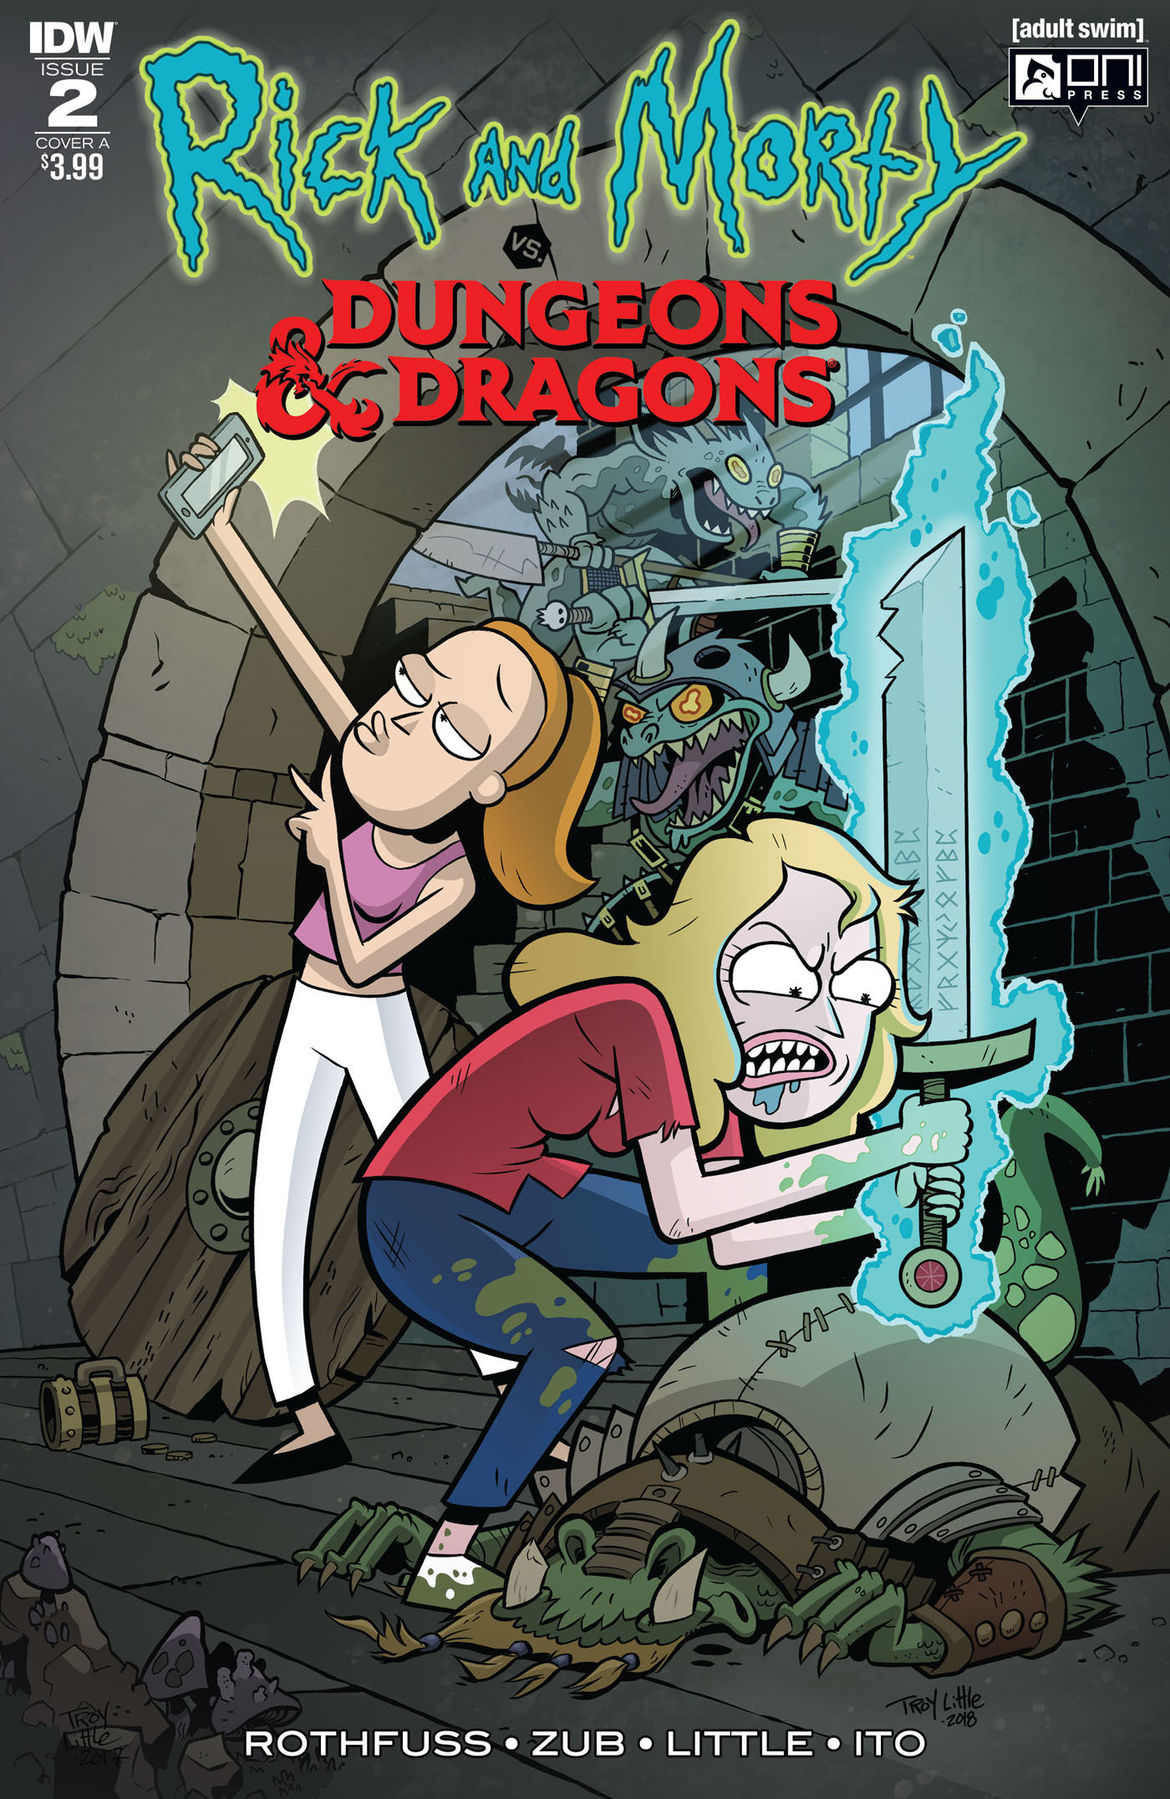 Rick and Morty vs Dungeons and Dragons 2 cover